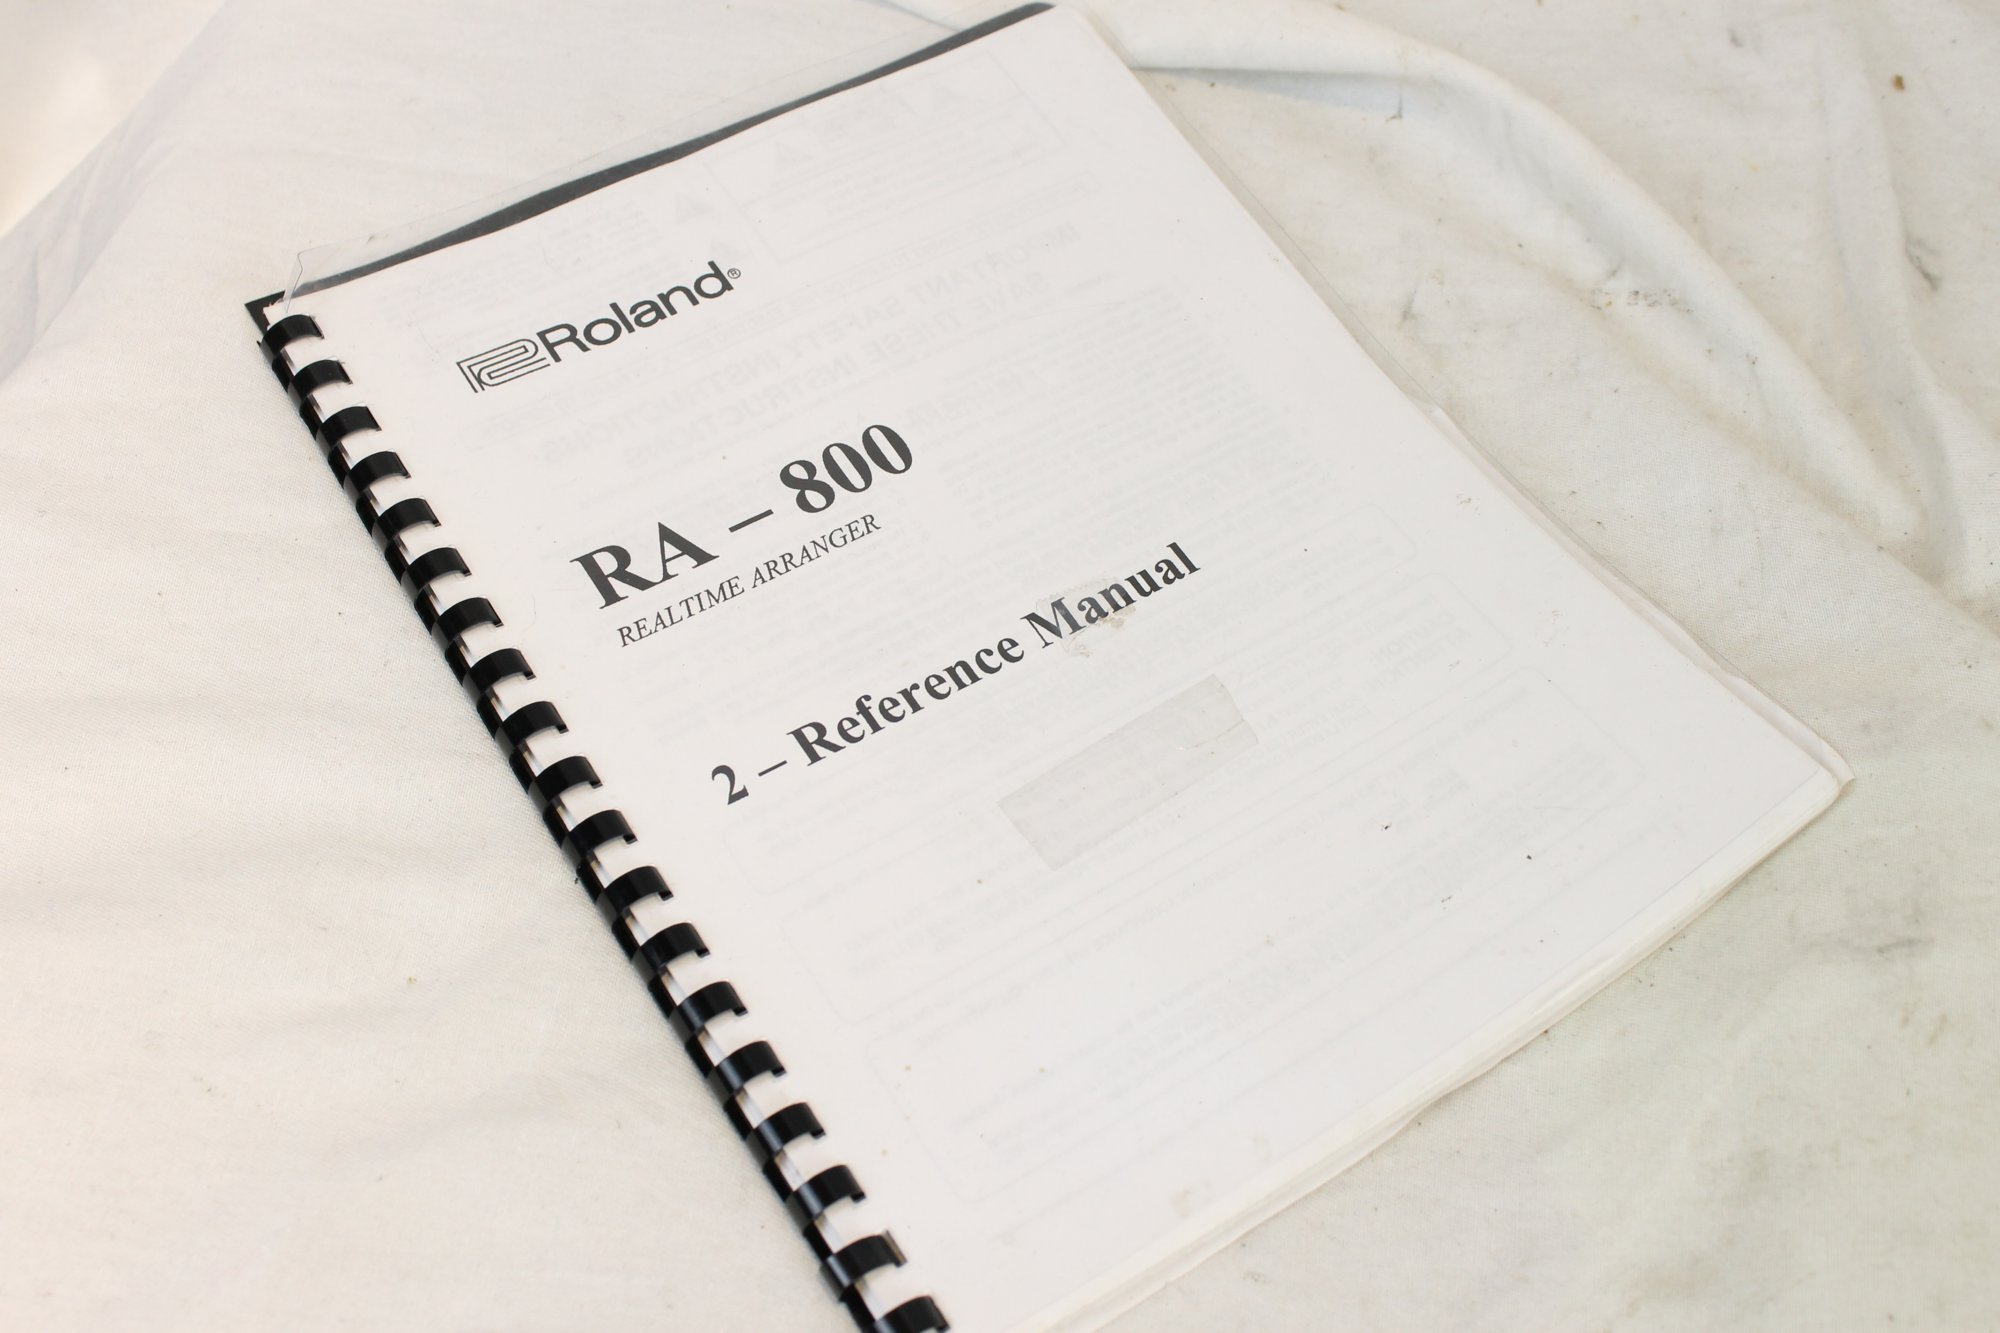 RA4/6 - Roland RA-800 Realtime Arranger Reference Manual